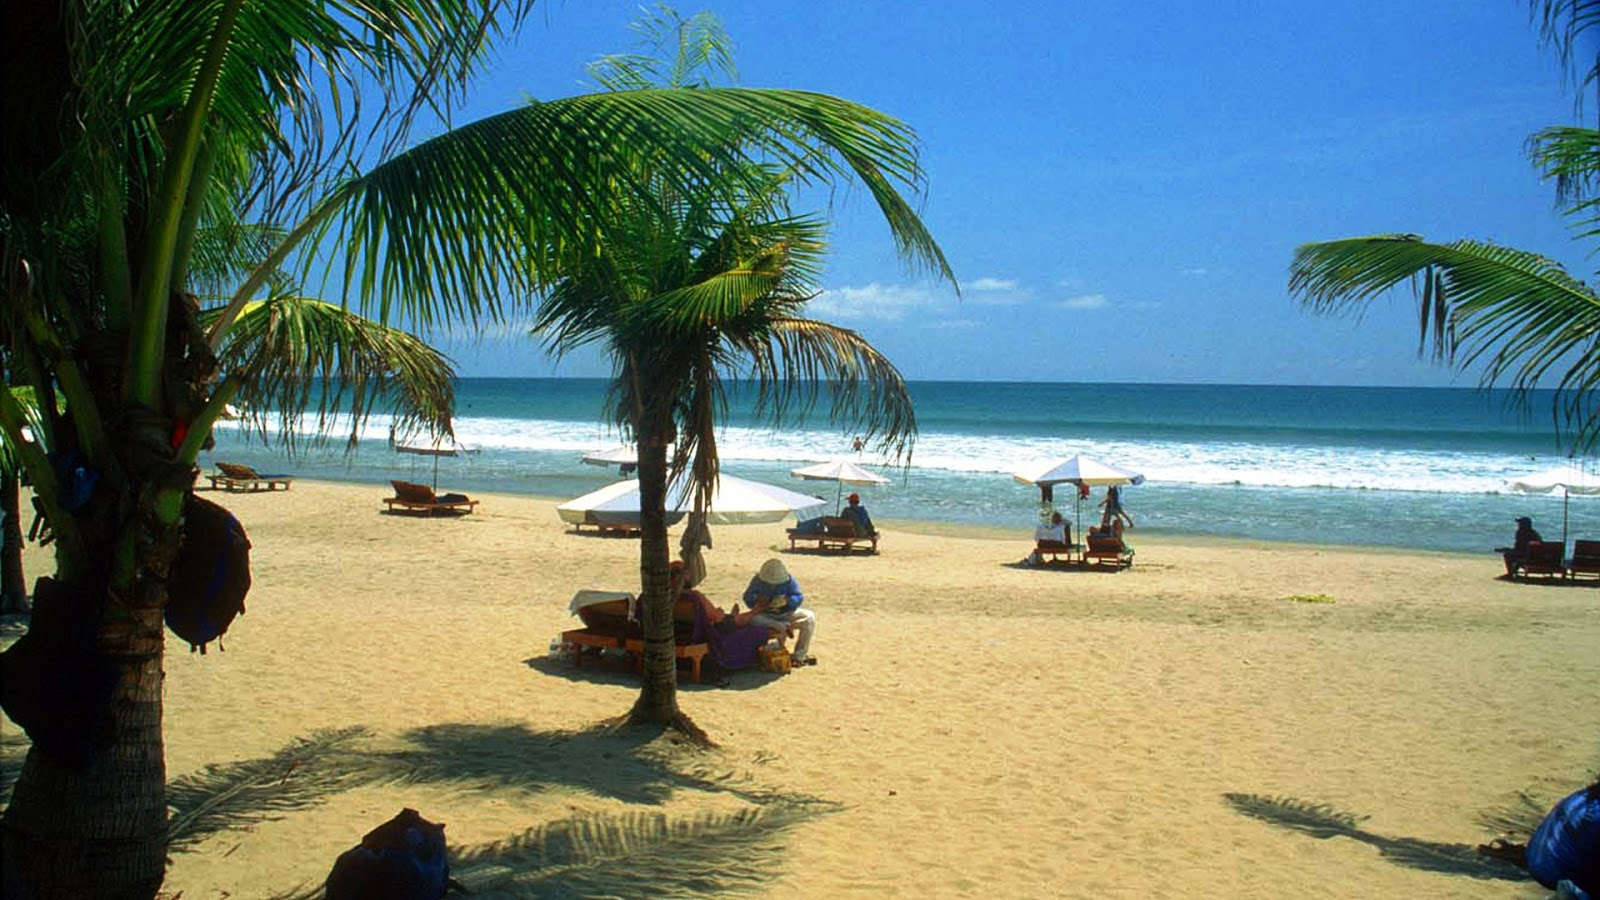 Kuta beach bali awesome indonesia for Kuta beach hotel